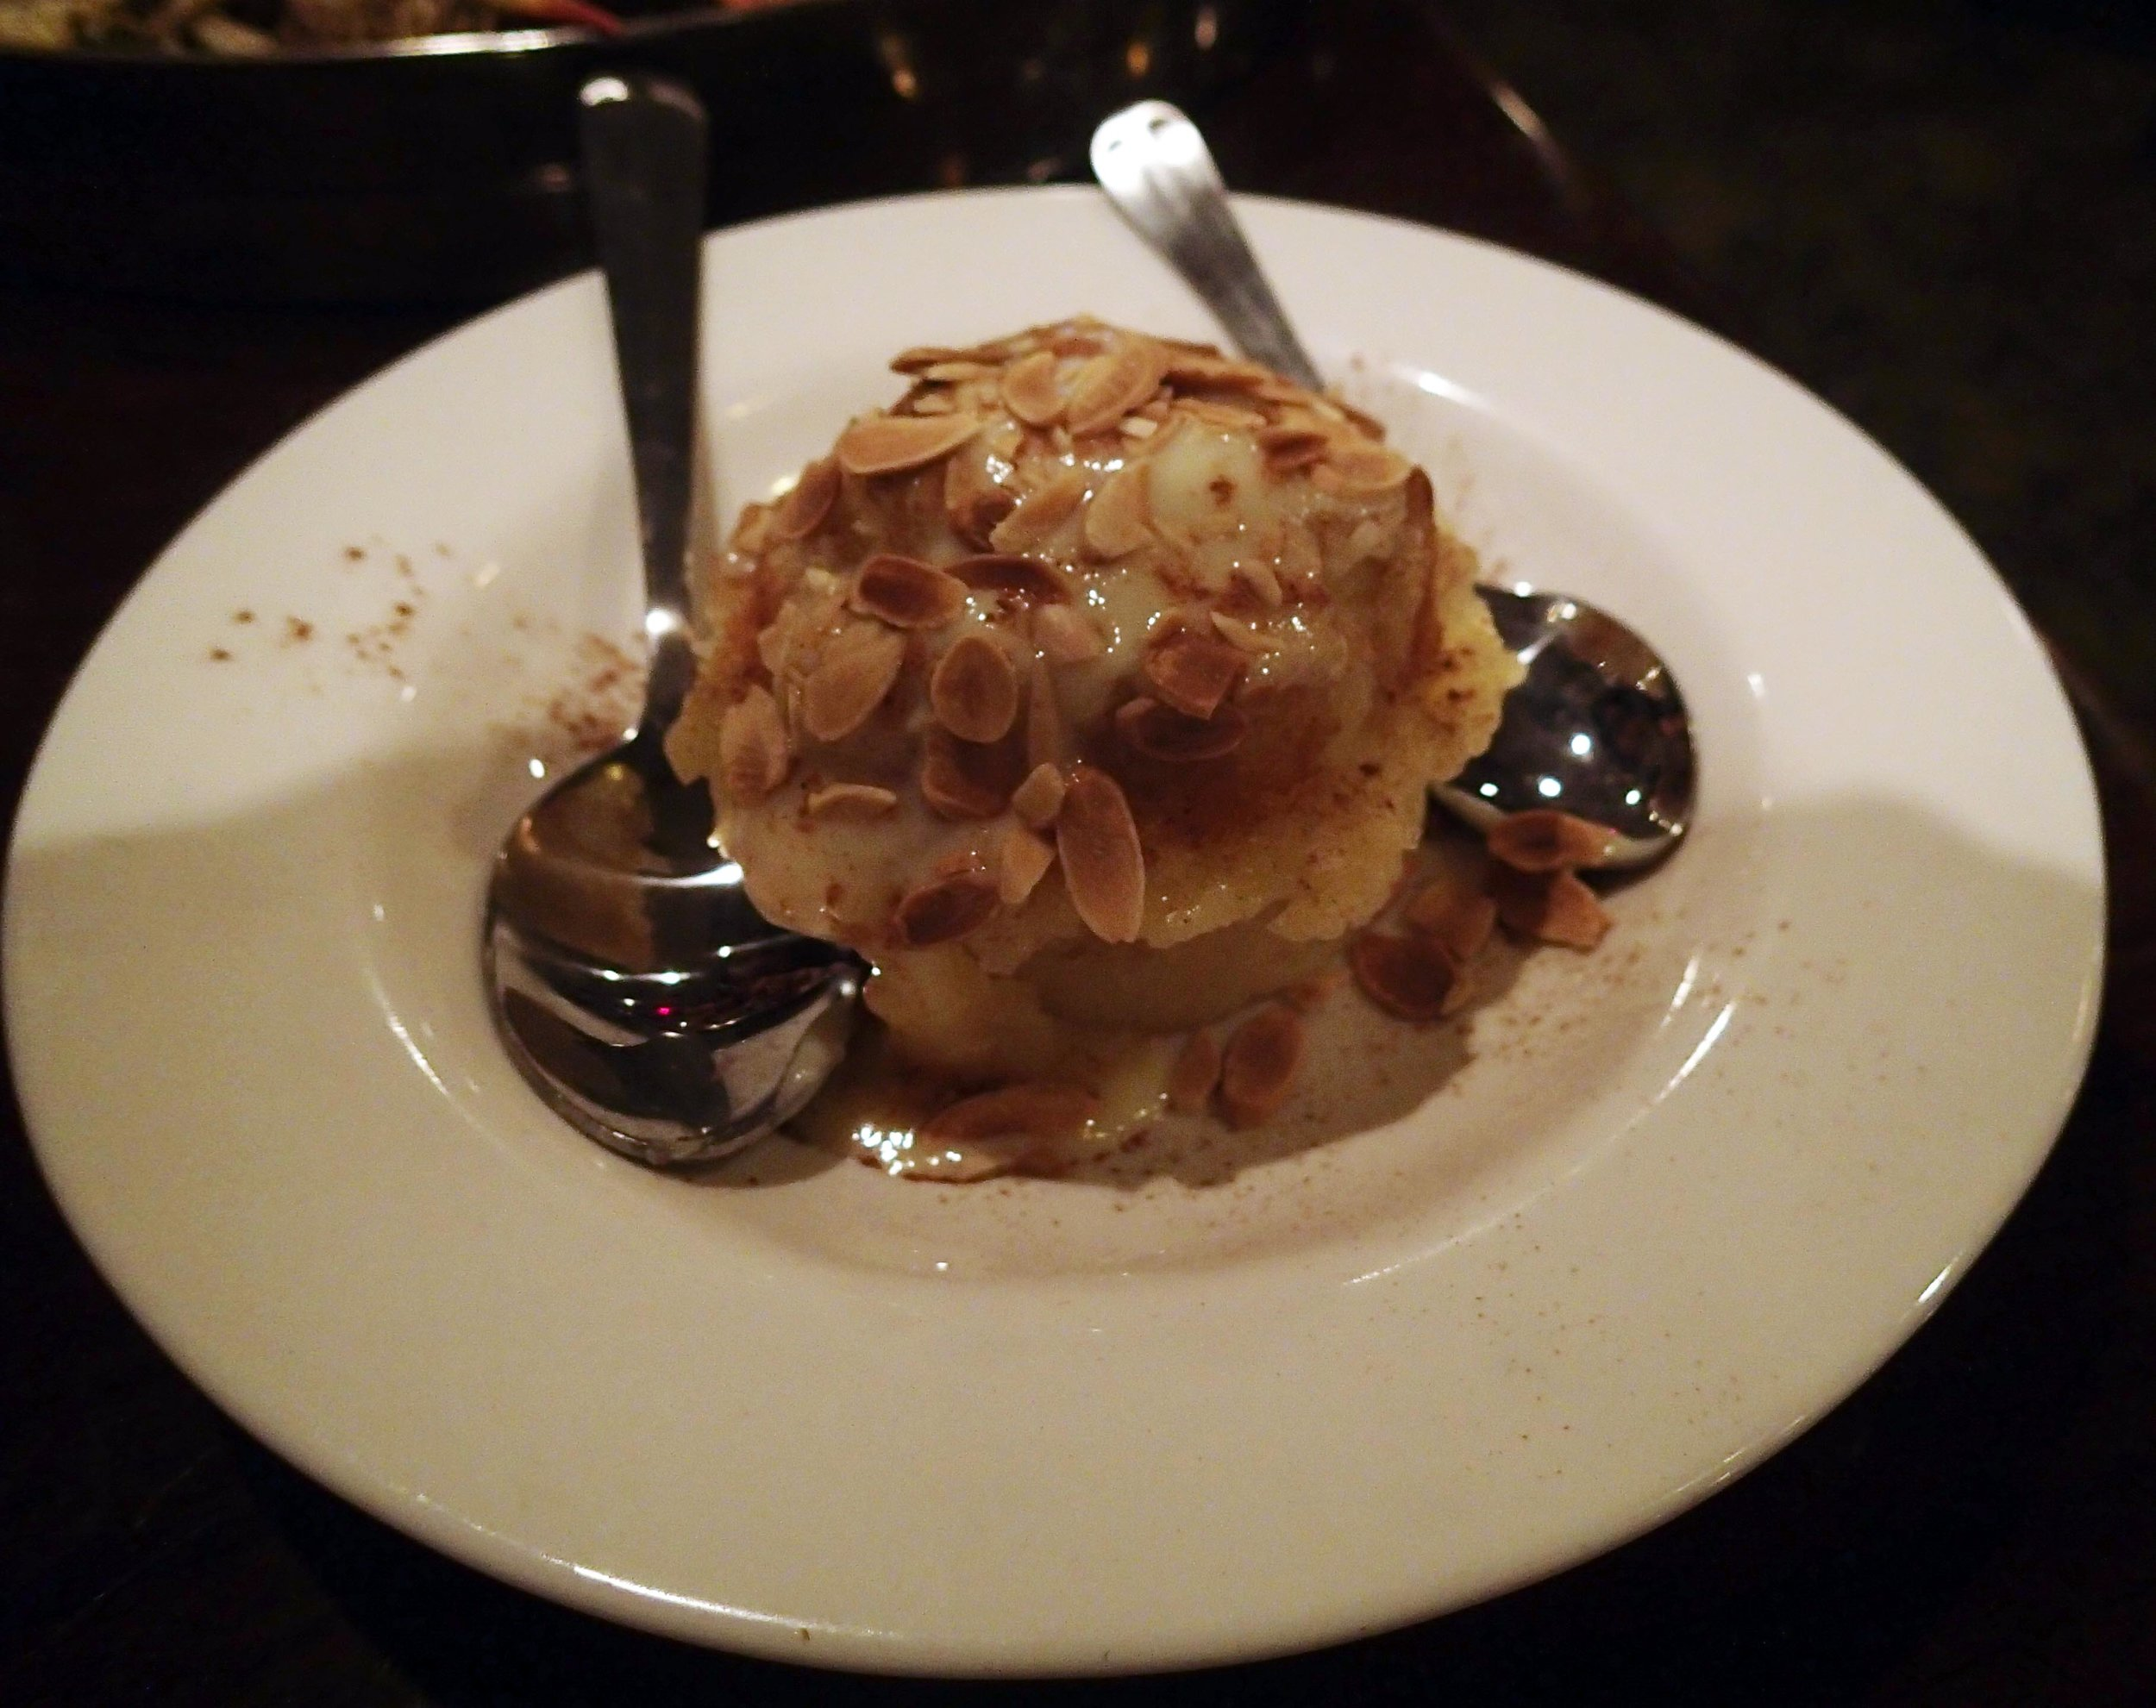 bread pudding.jpg